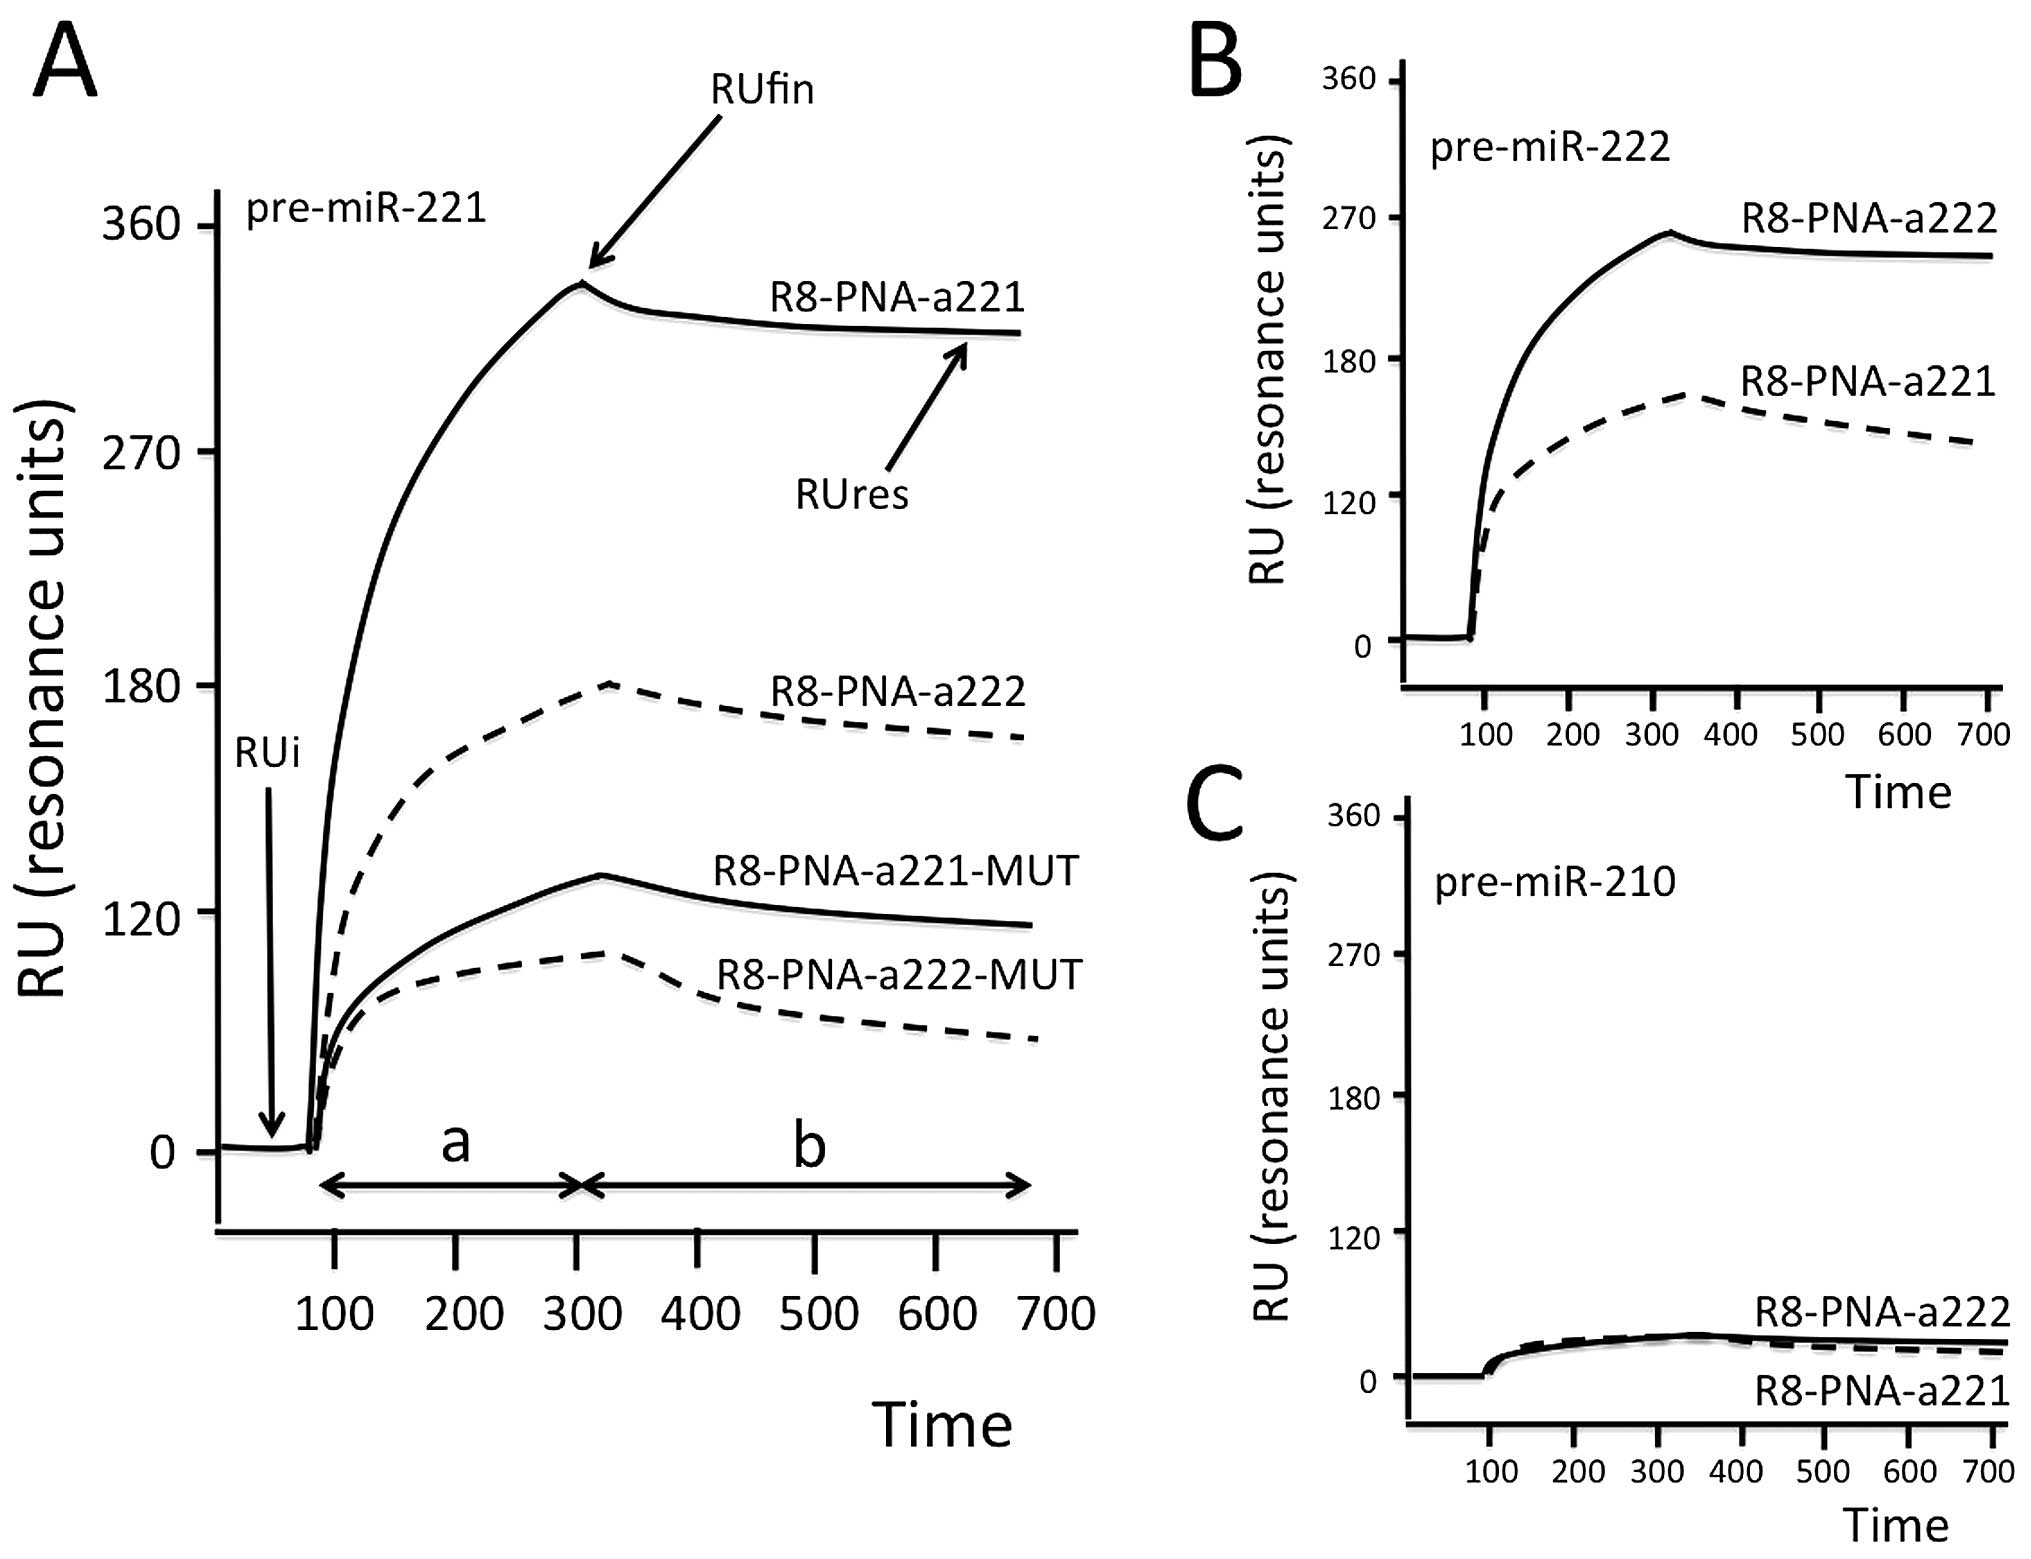 High Levels Of Apoptosis Are Induced In Human Glioma Cell Lines By Pna L Block Diagram B And C Bia Showing The Hybridization Between Injected Pre Mir 222 210 Sensor Chips To Which R8 A221 Or A222 Were